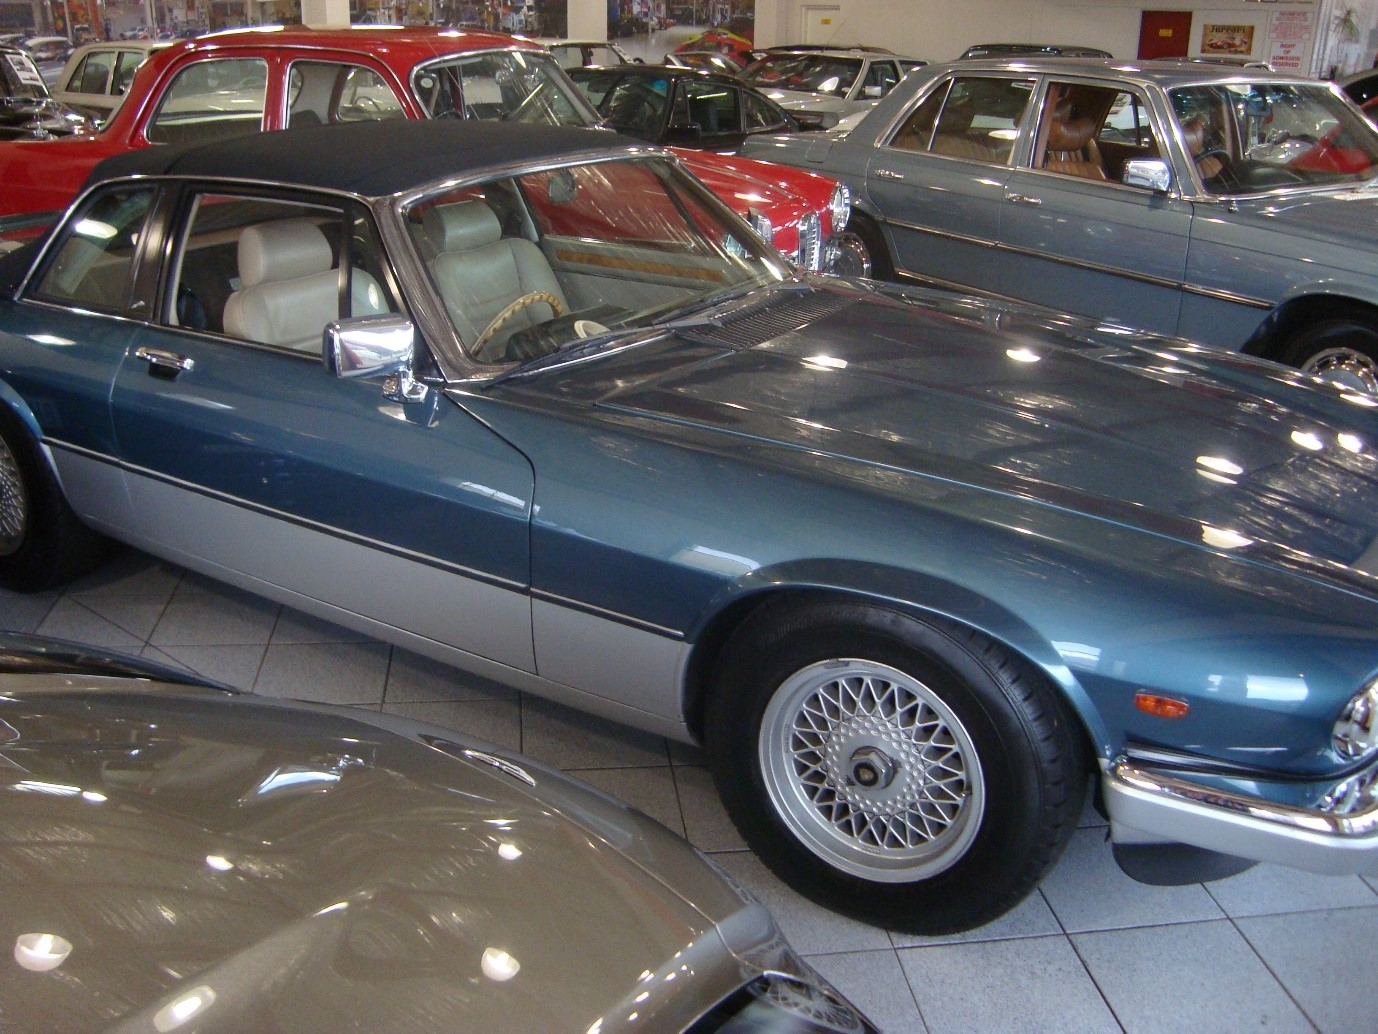 Buying an old XJ-S seems daunting but a well looked after one will be a joy to drive.